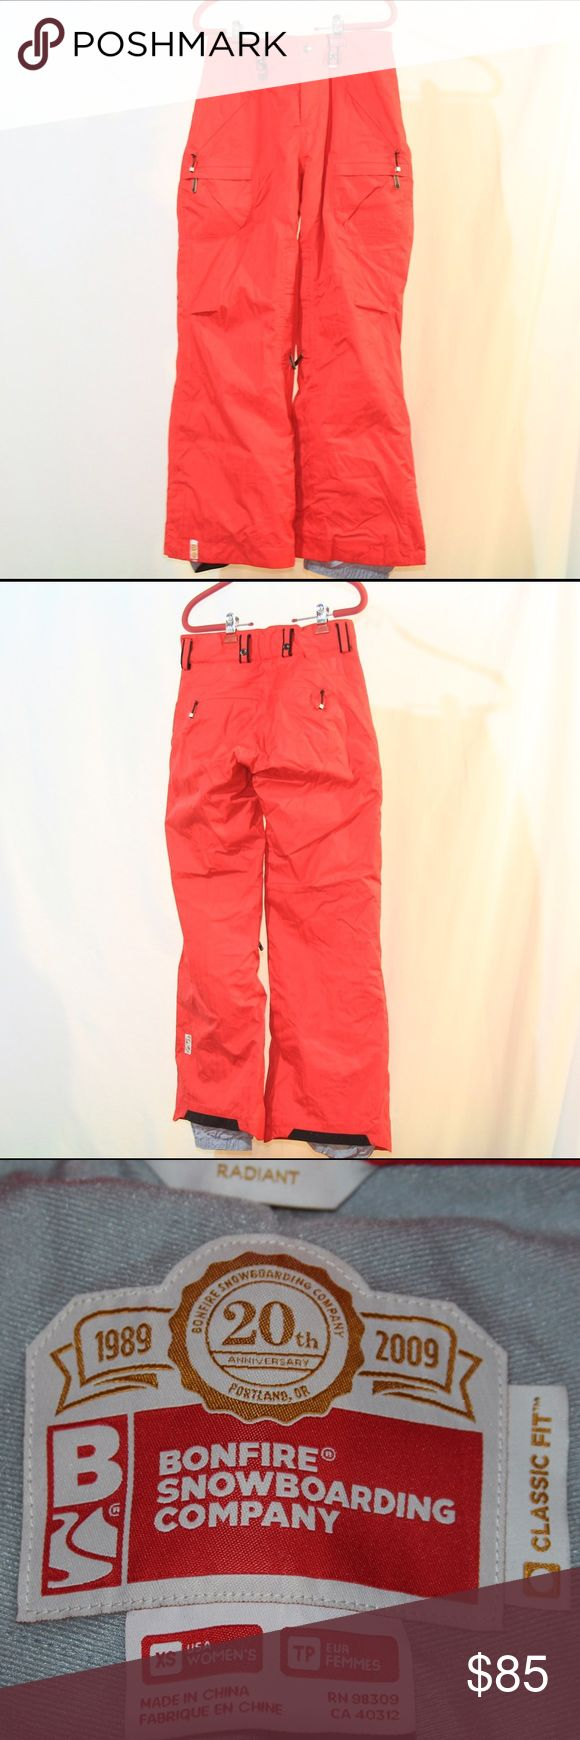 Bonfire Radiant Women's Snowboarding Pants Bright red super stylish 20th Anniversary Bonfire snowboarding pants! Size XS, used for one season-- in great condition. No rips or tears in the material. Bonfire Snowboarding Company Pants Track Pants & Joggers